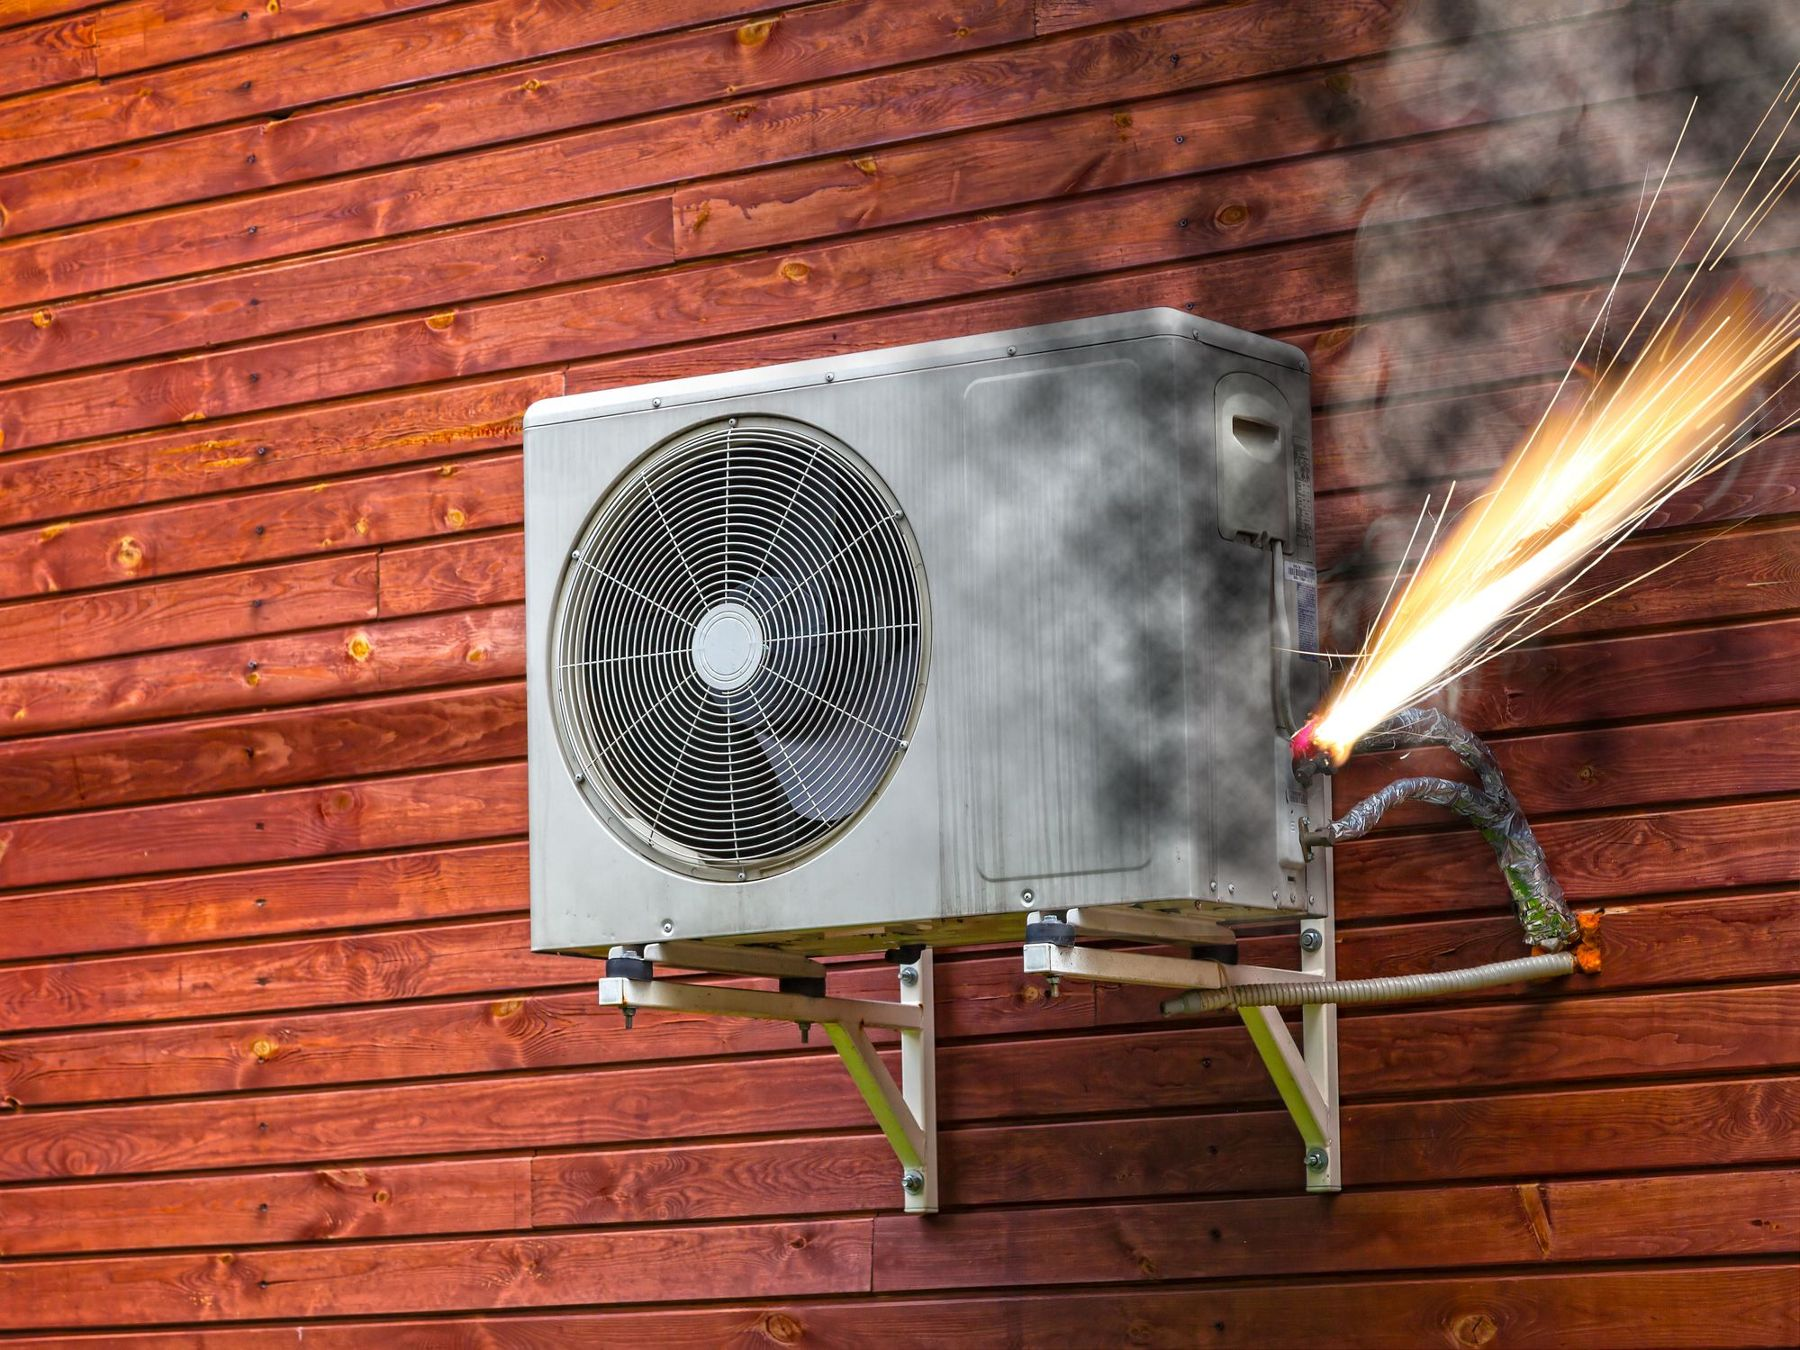 Air-conditioner fires on the increase = greater need for smoke detectors in bedrooms